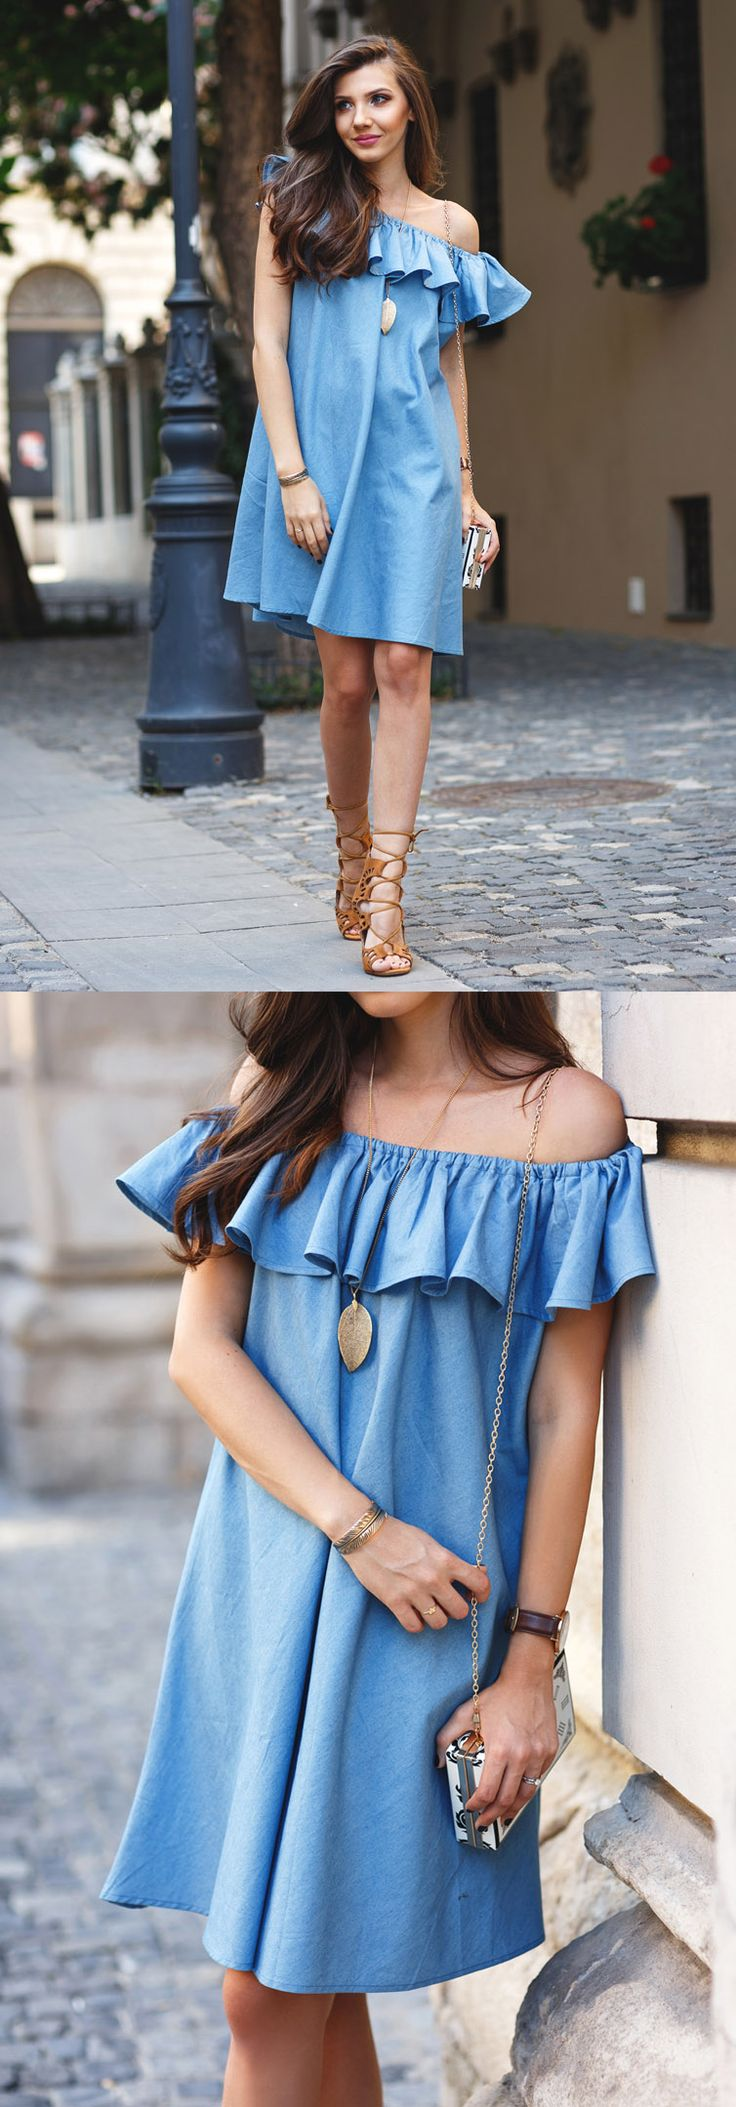 Marvel at the casual-chic simplicity of this denim dress' relaxed fit, frilling elastic shoulder, and soft